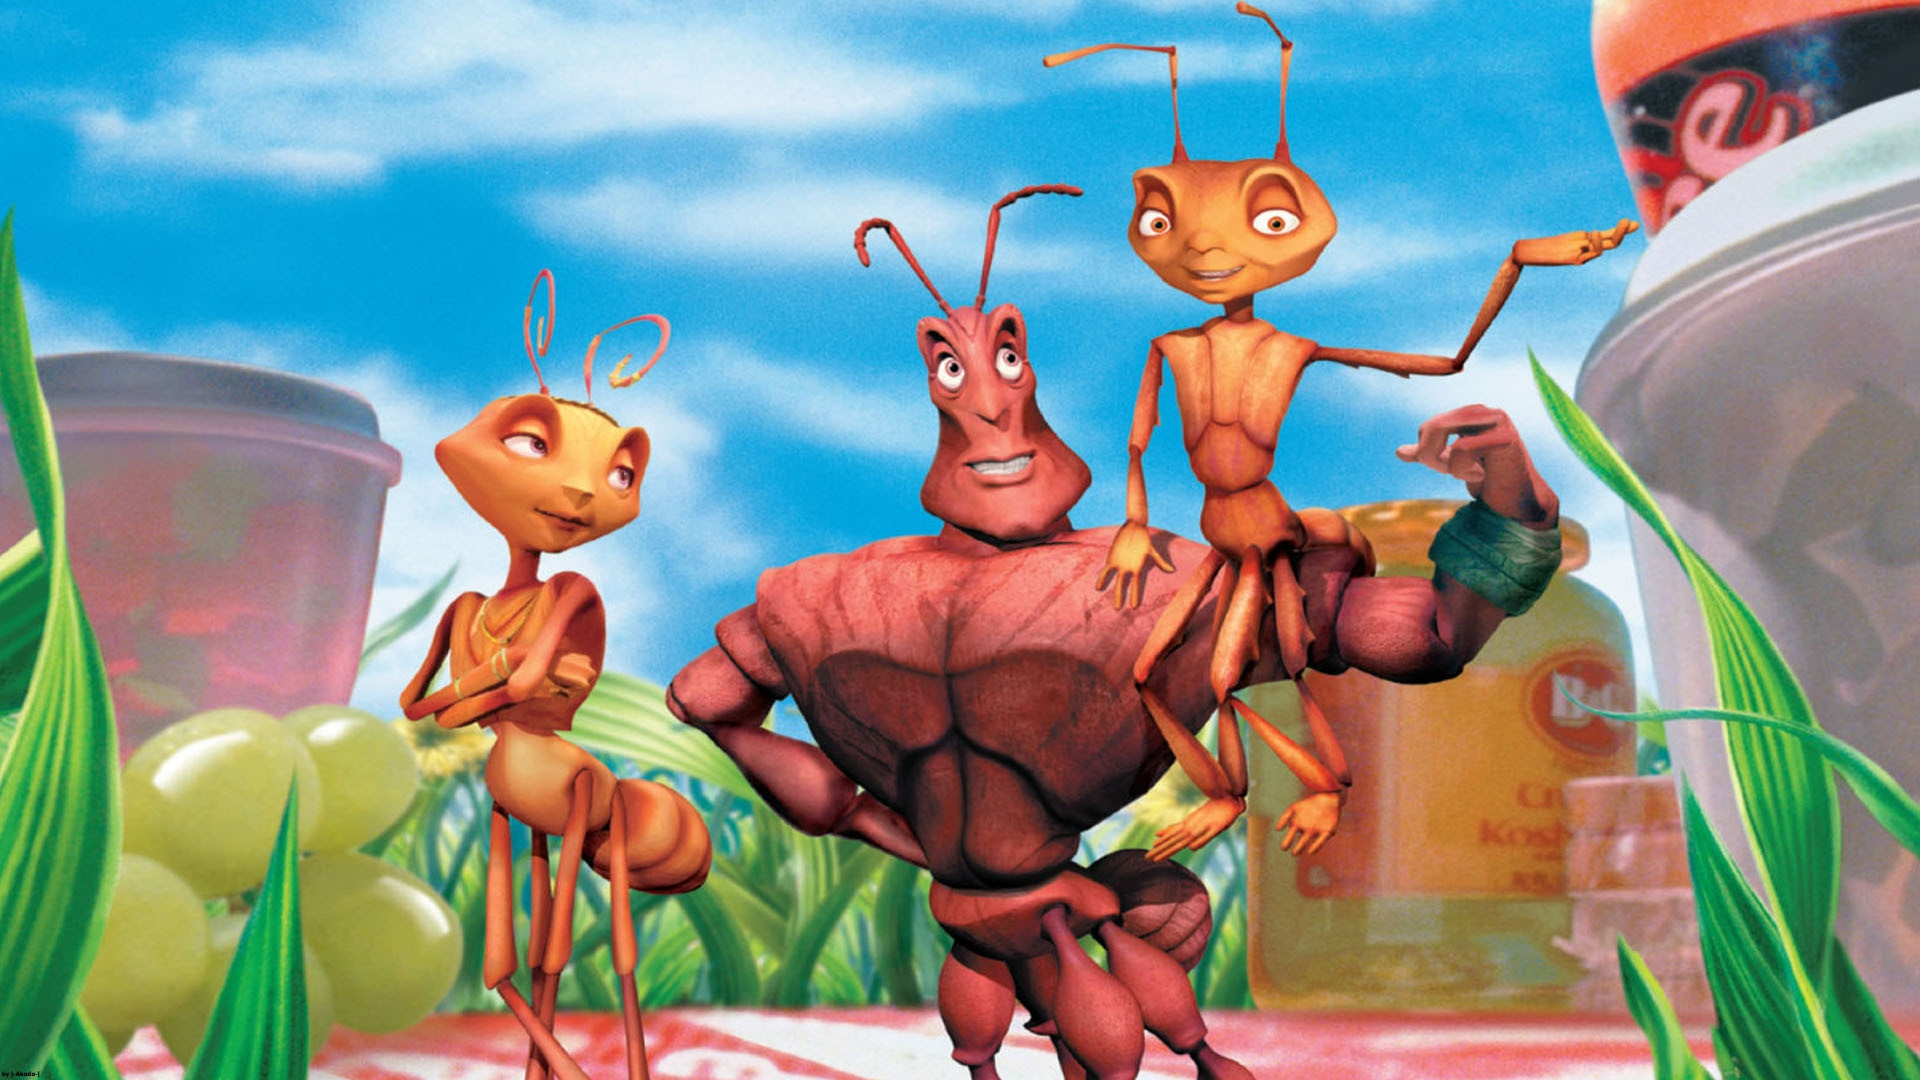 Antz Wallpaper   Antz Wallpaper 1920x1080 134229 1920x1080